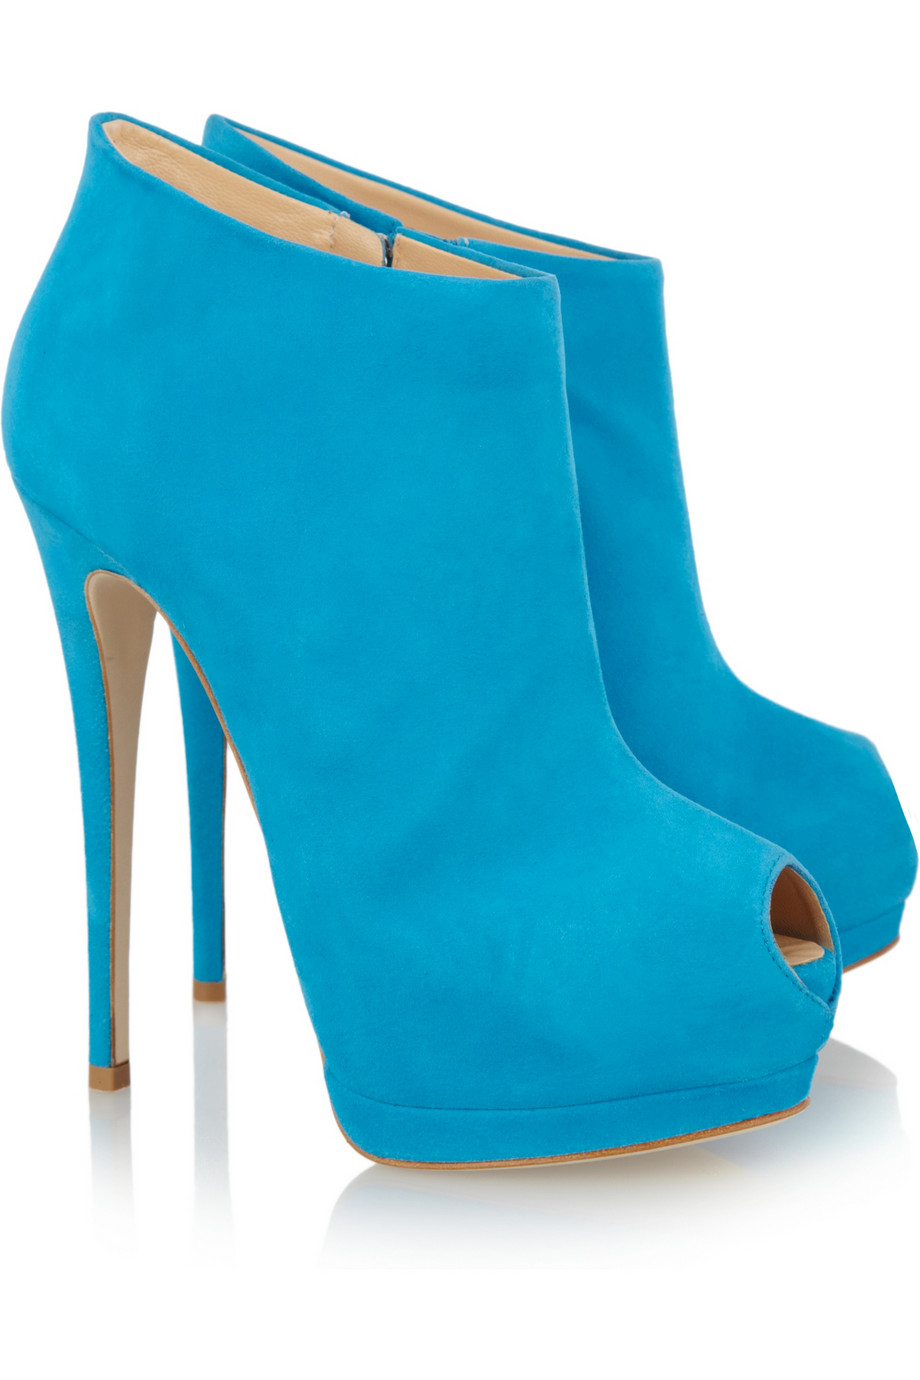 Blue Ankle Boots 4i6rsLIz